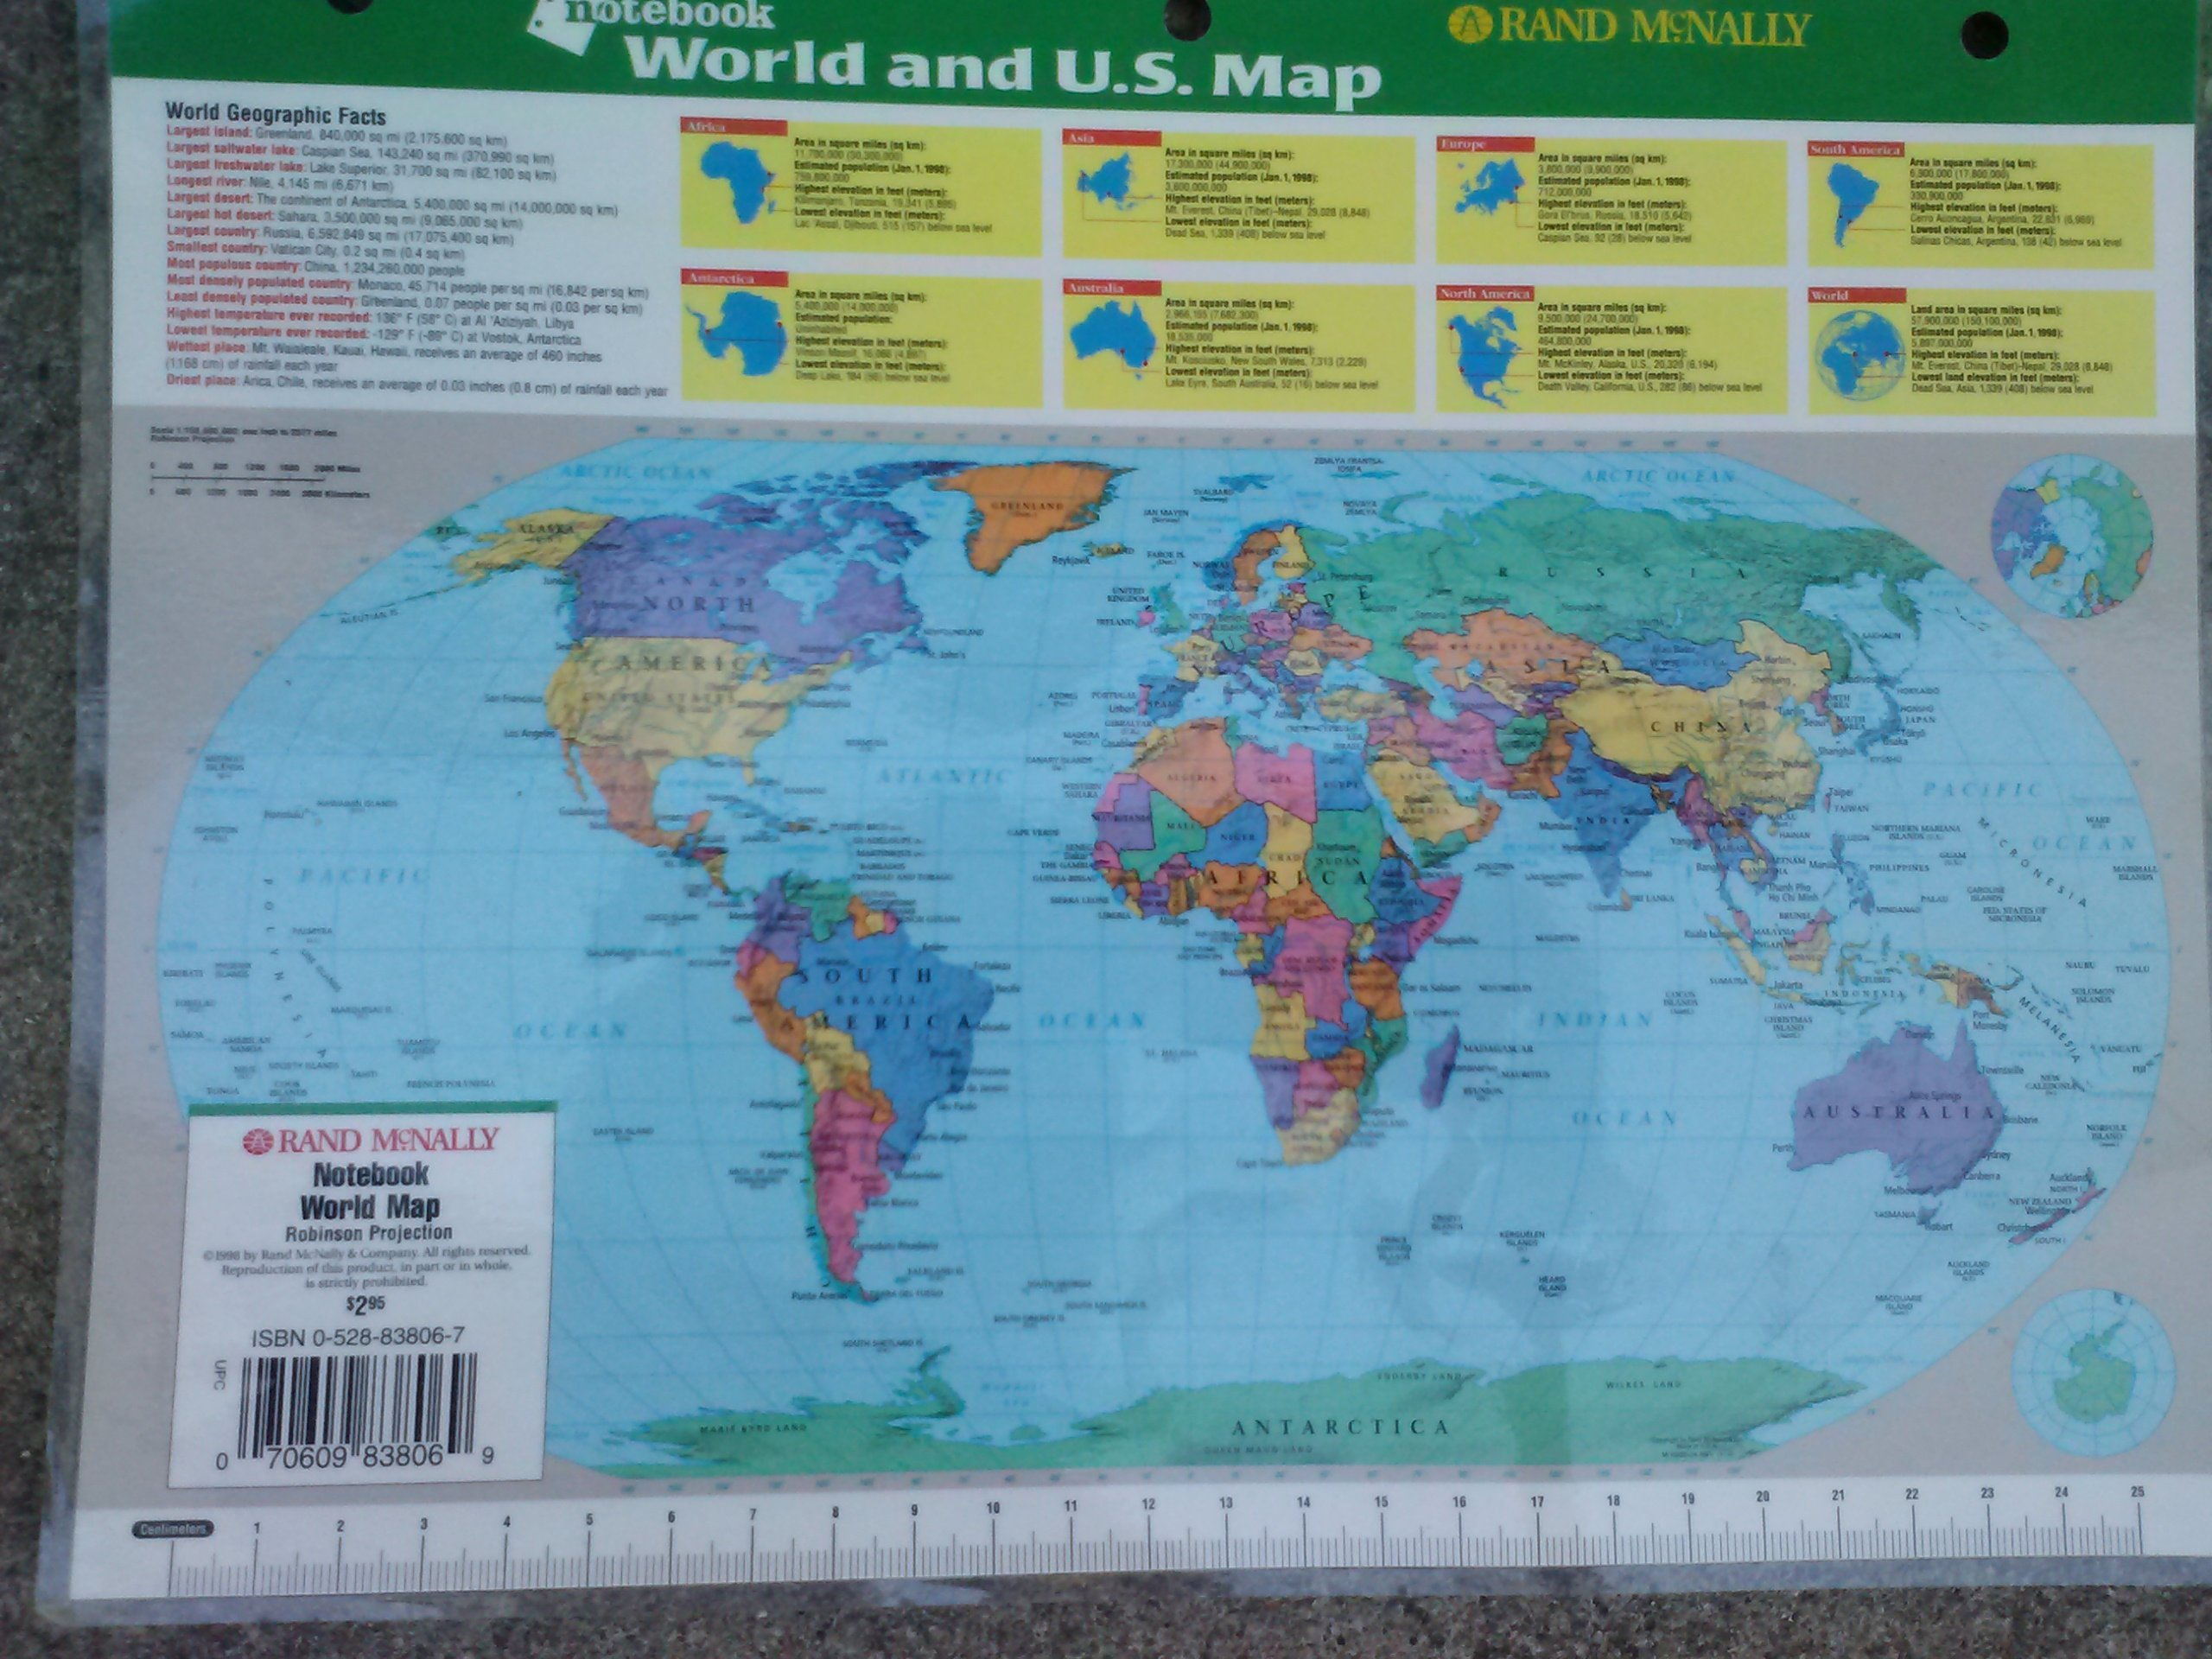 Notebook world and us map notebook series rand mcnally notebook world and us map notebook series rand mcnally 9780528838064 amazon books gumiabroncs Choice Image